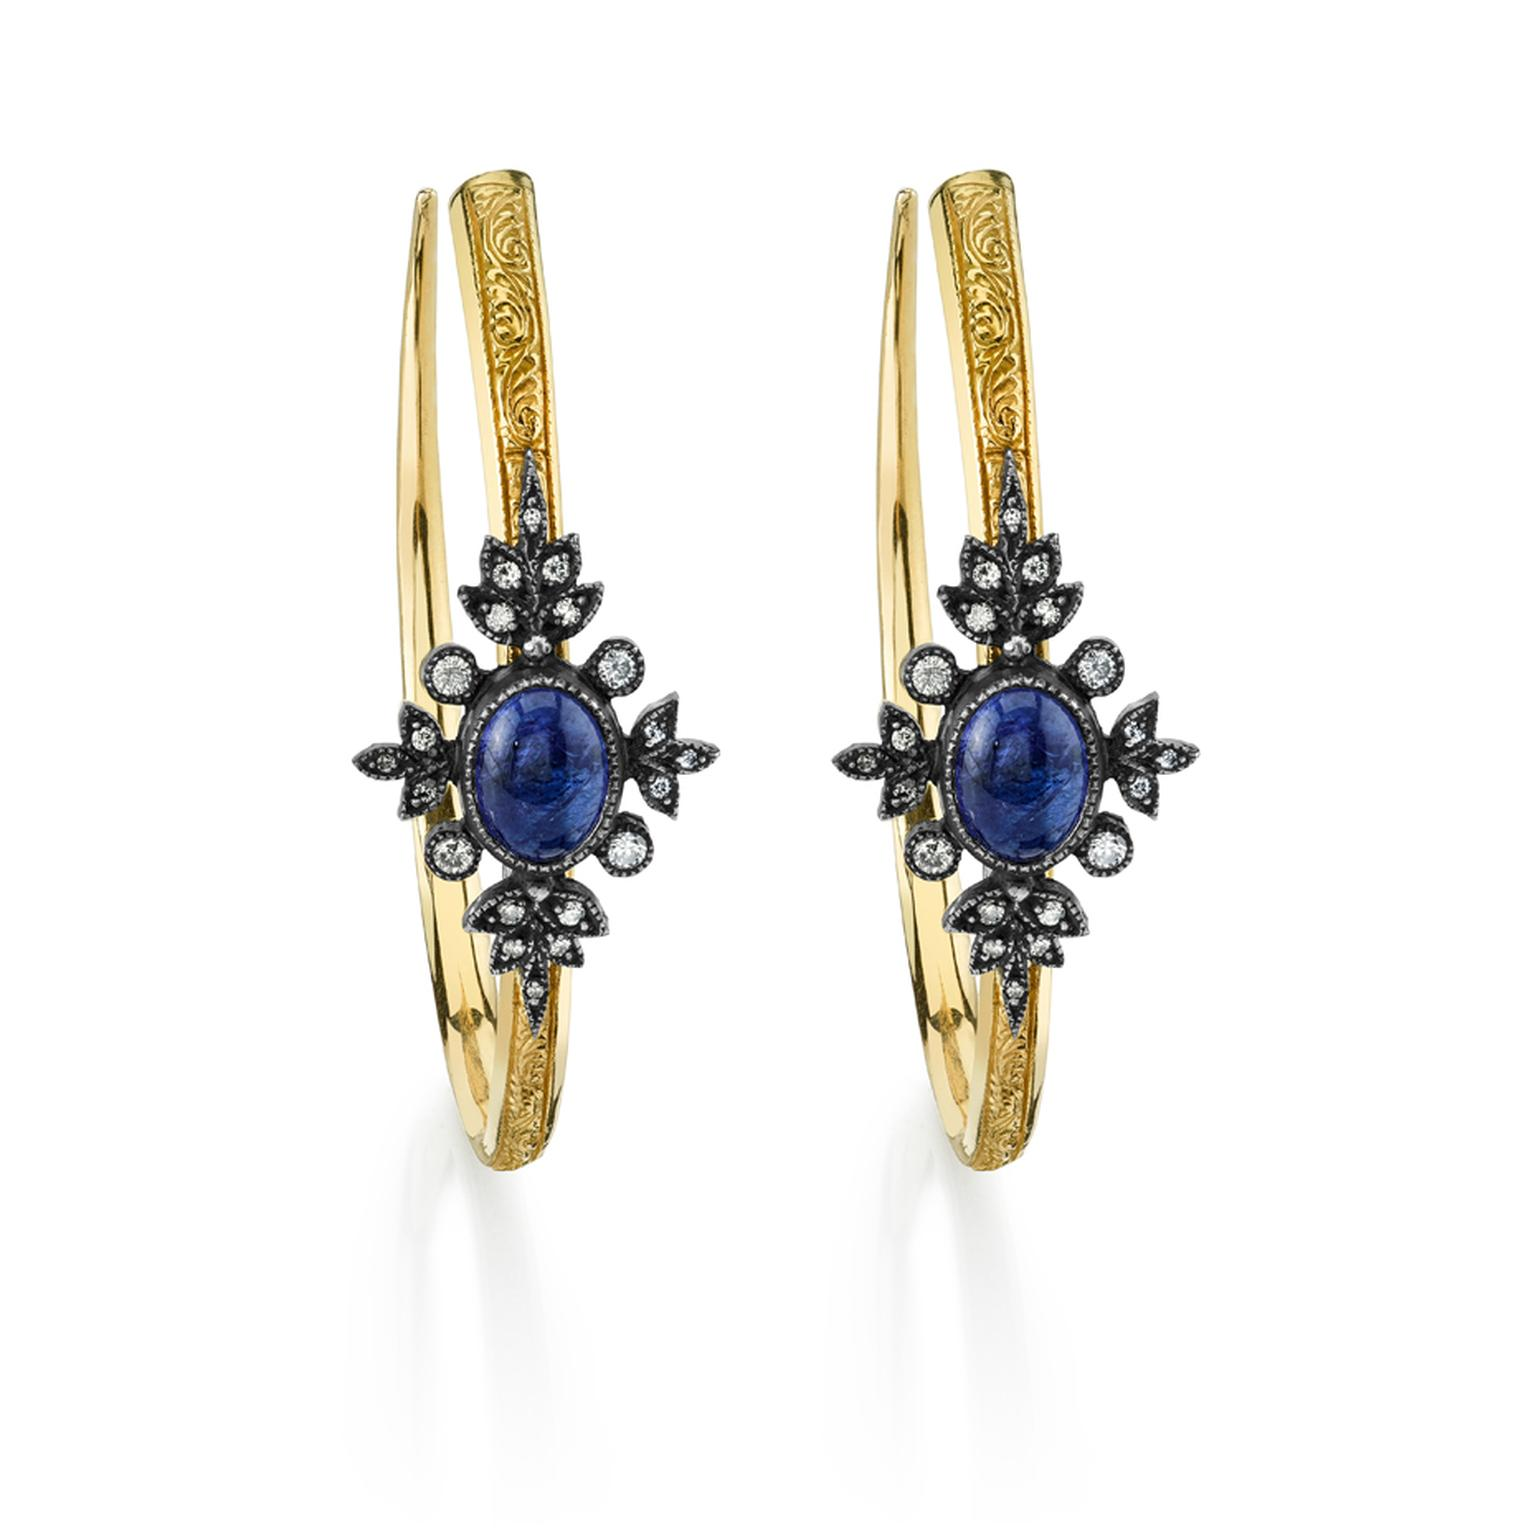 Arman Sarkisyan gold hoop earrings with tanzanite, diamonds and oxidised silver